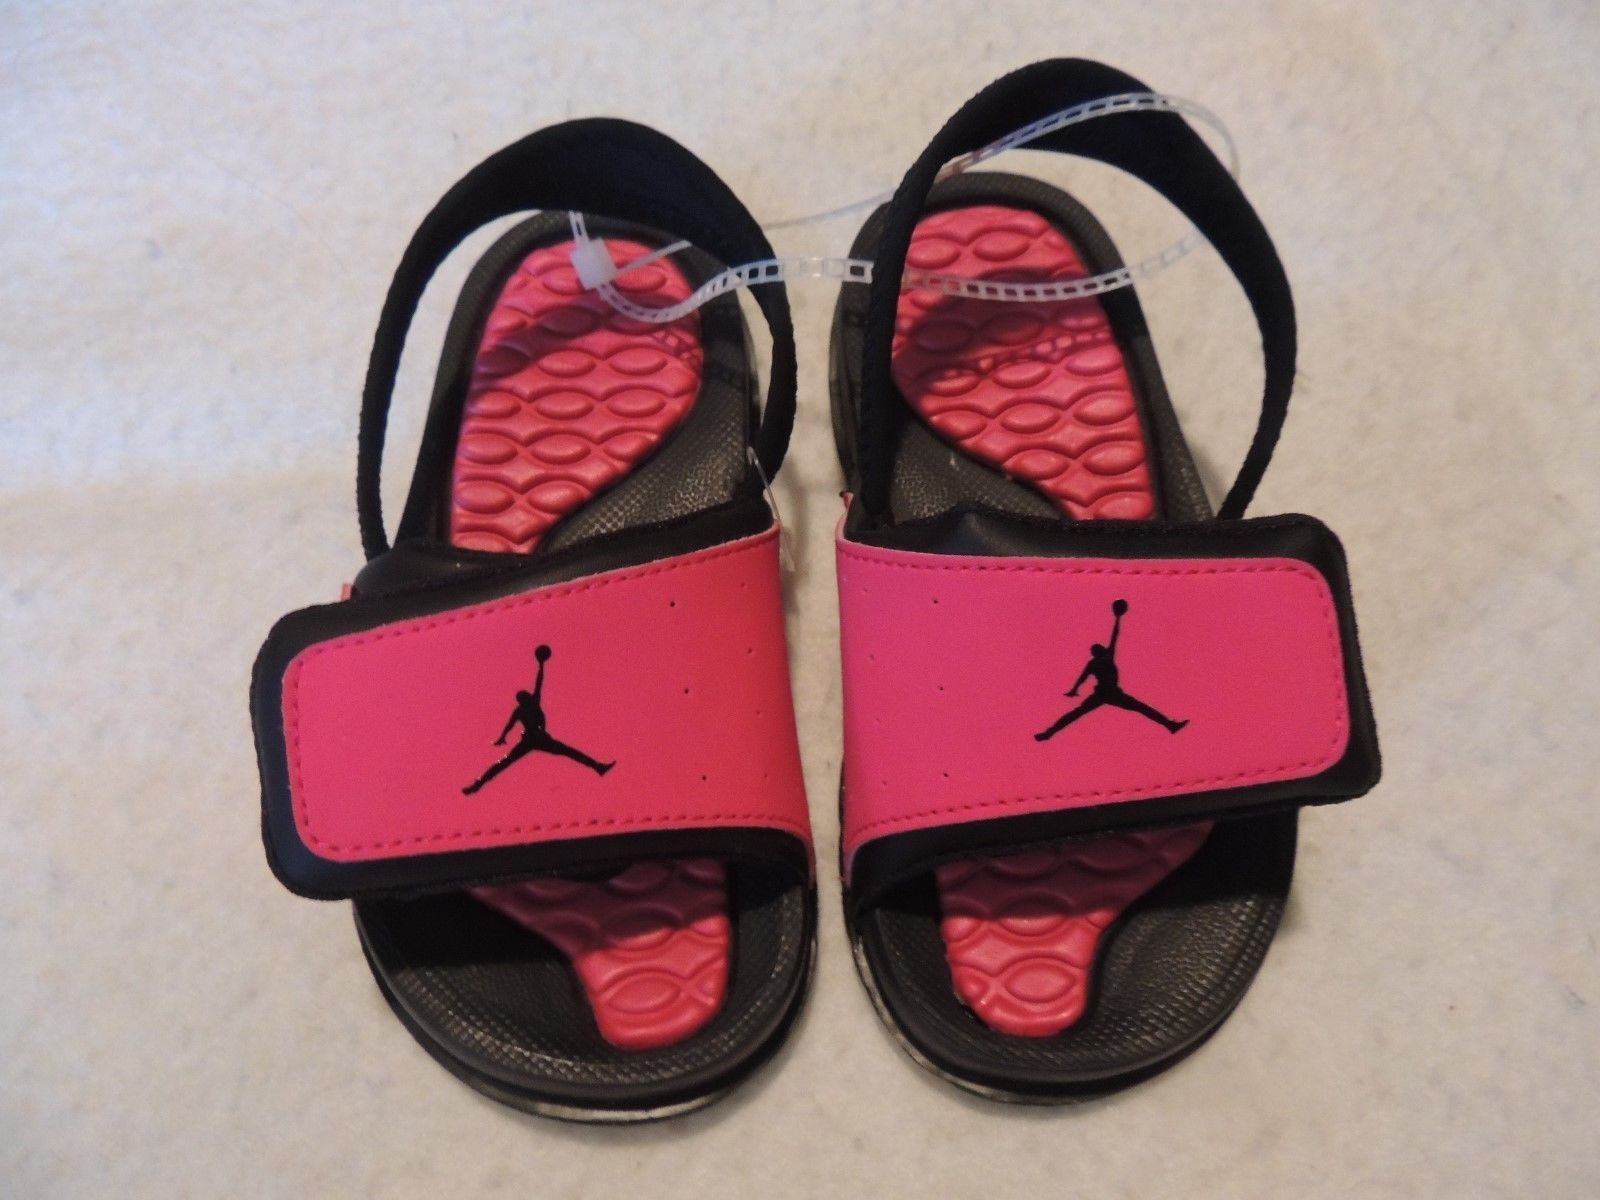 65646818fd0397 NWOT TODDLER GIRLS NIKE AIR JORDAN VELCRO SLIDES~SANDALS~SHOES~SIZE 8~black  pink